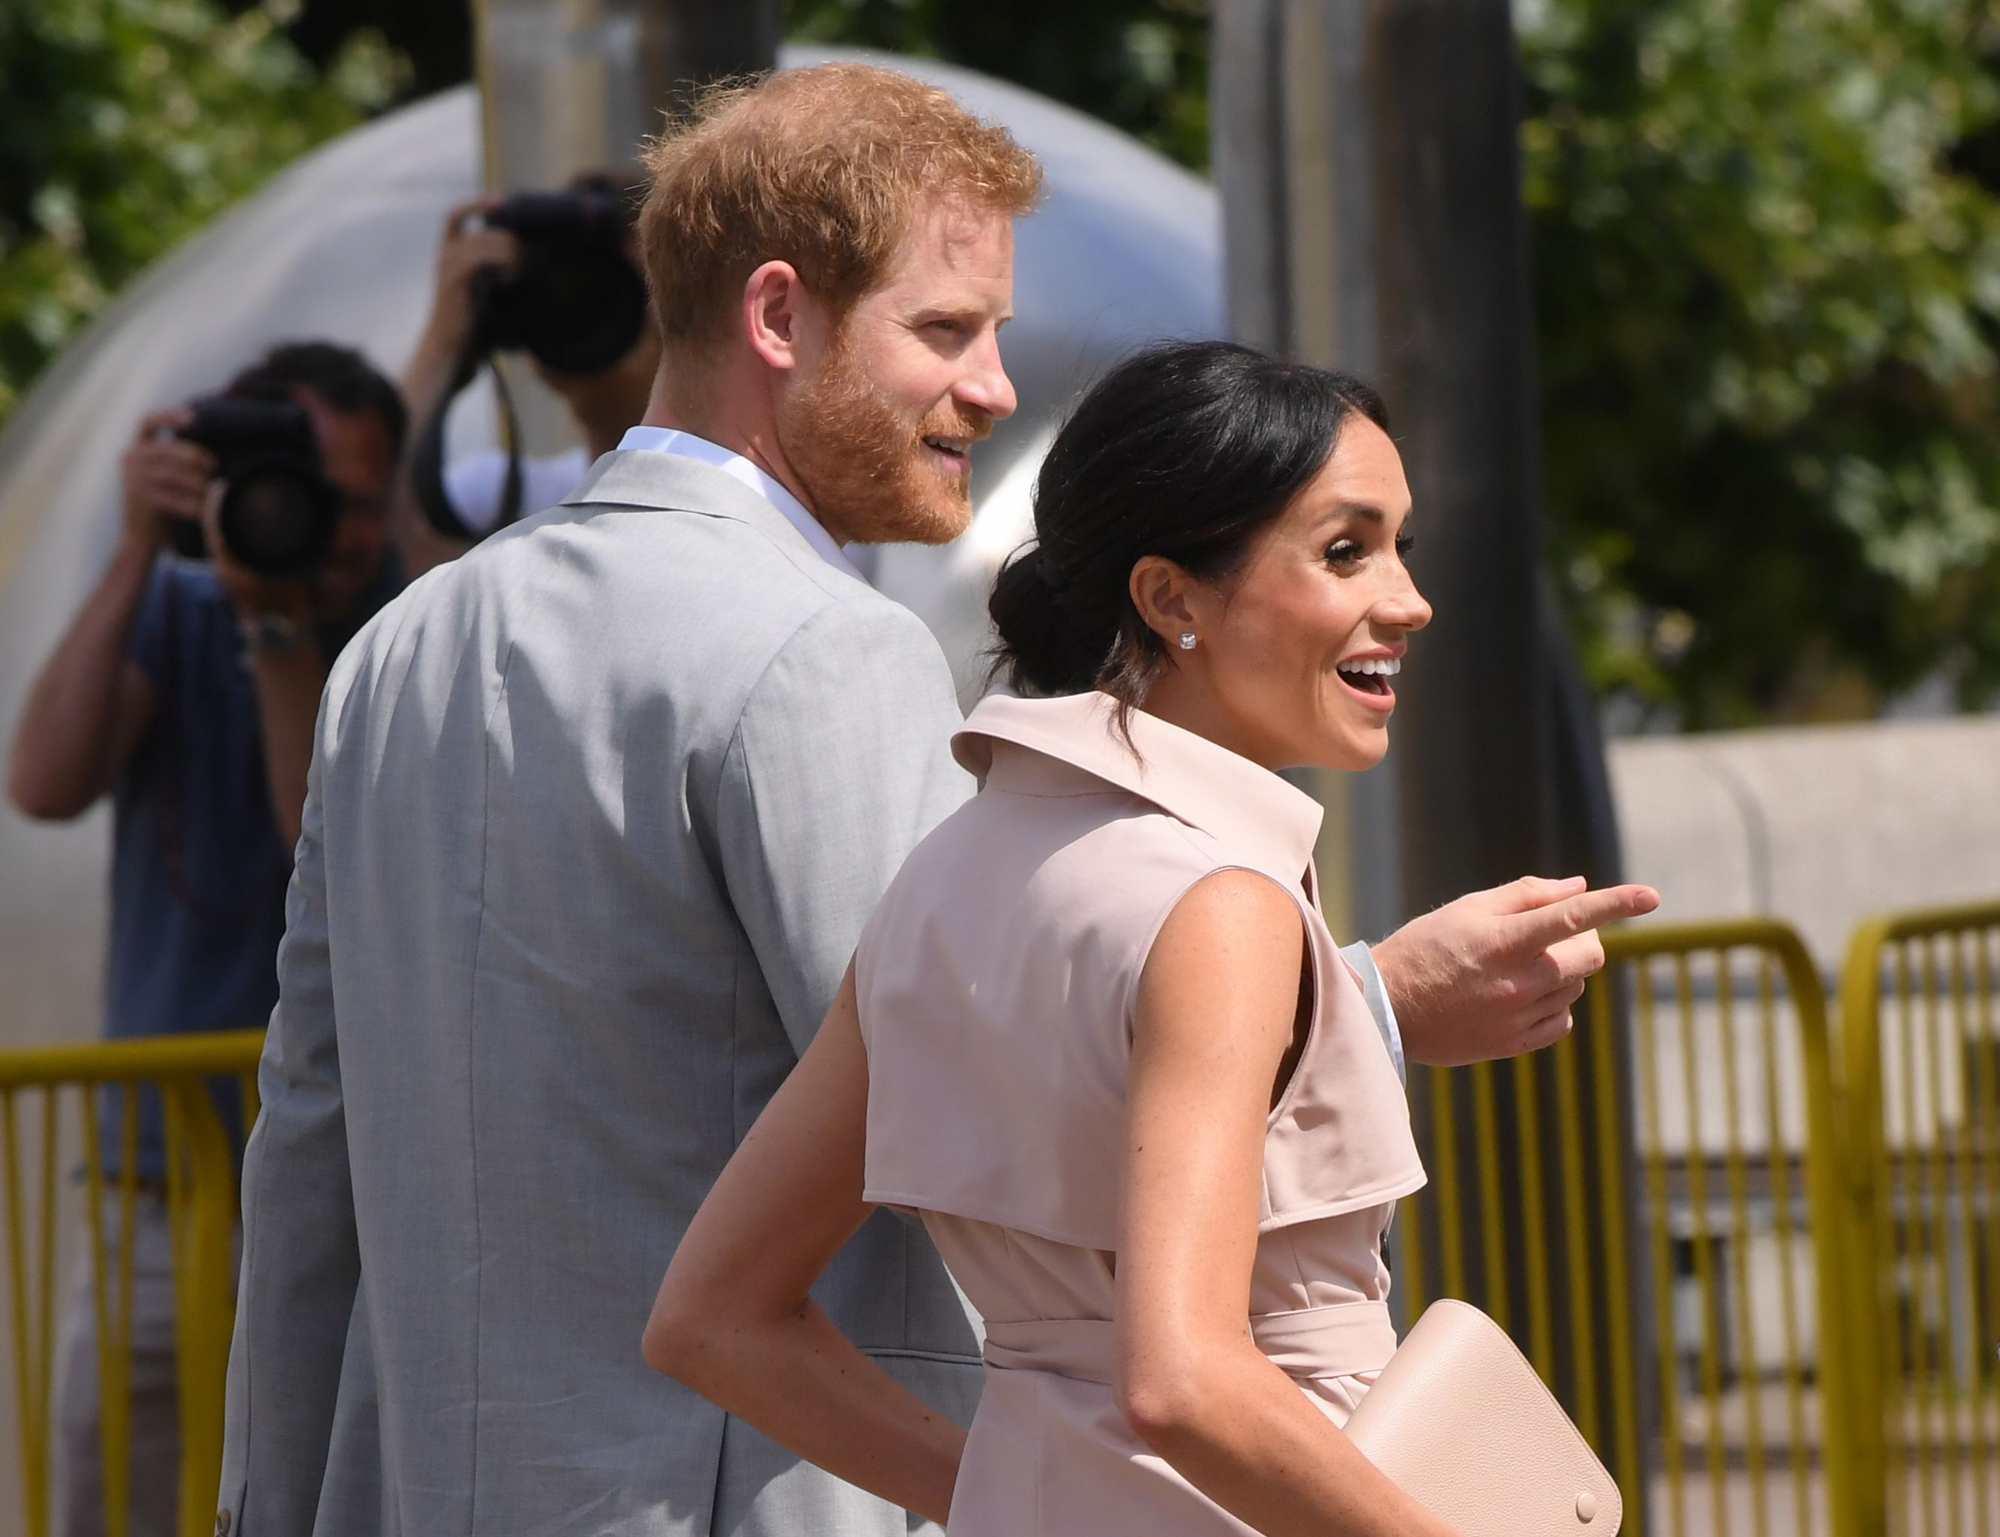 Mandatory Credit: Photo by David Fisher/REX/Shutterstock (9763414e) Meghan Duchess of Sussex and Prince Harry Nelson Mandela Centenary Launch, Southbank Centre, London, UK - 17 Jul 2018